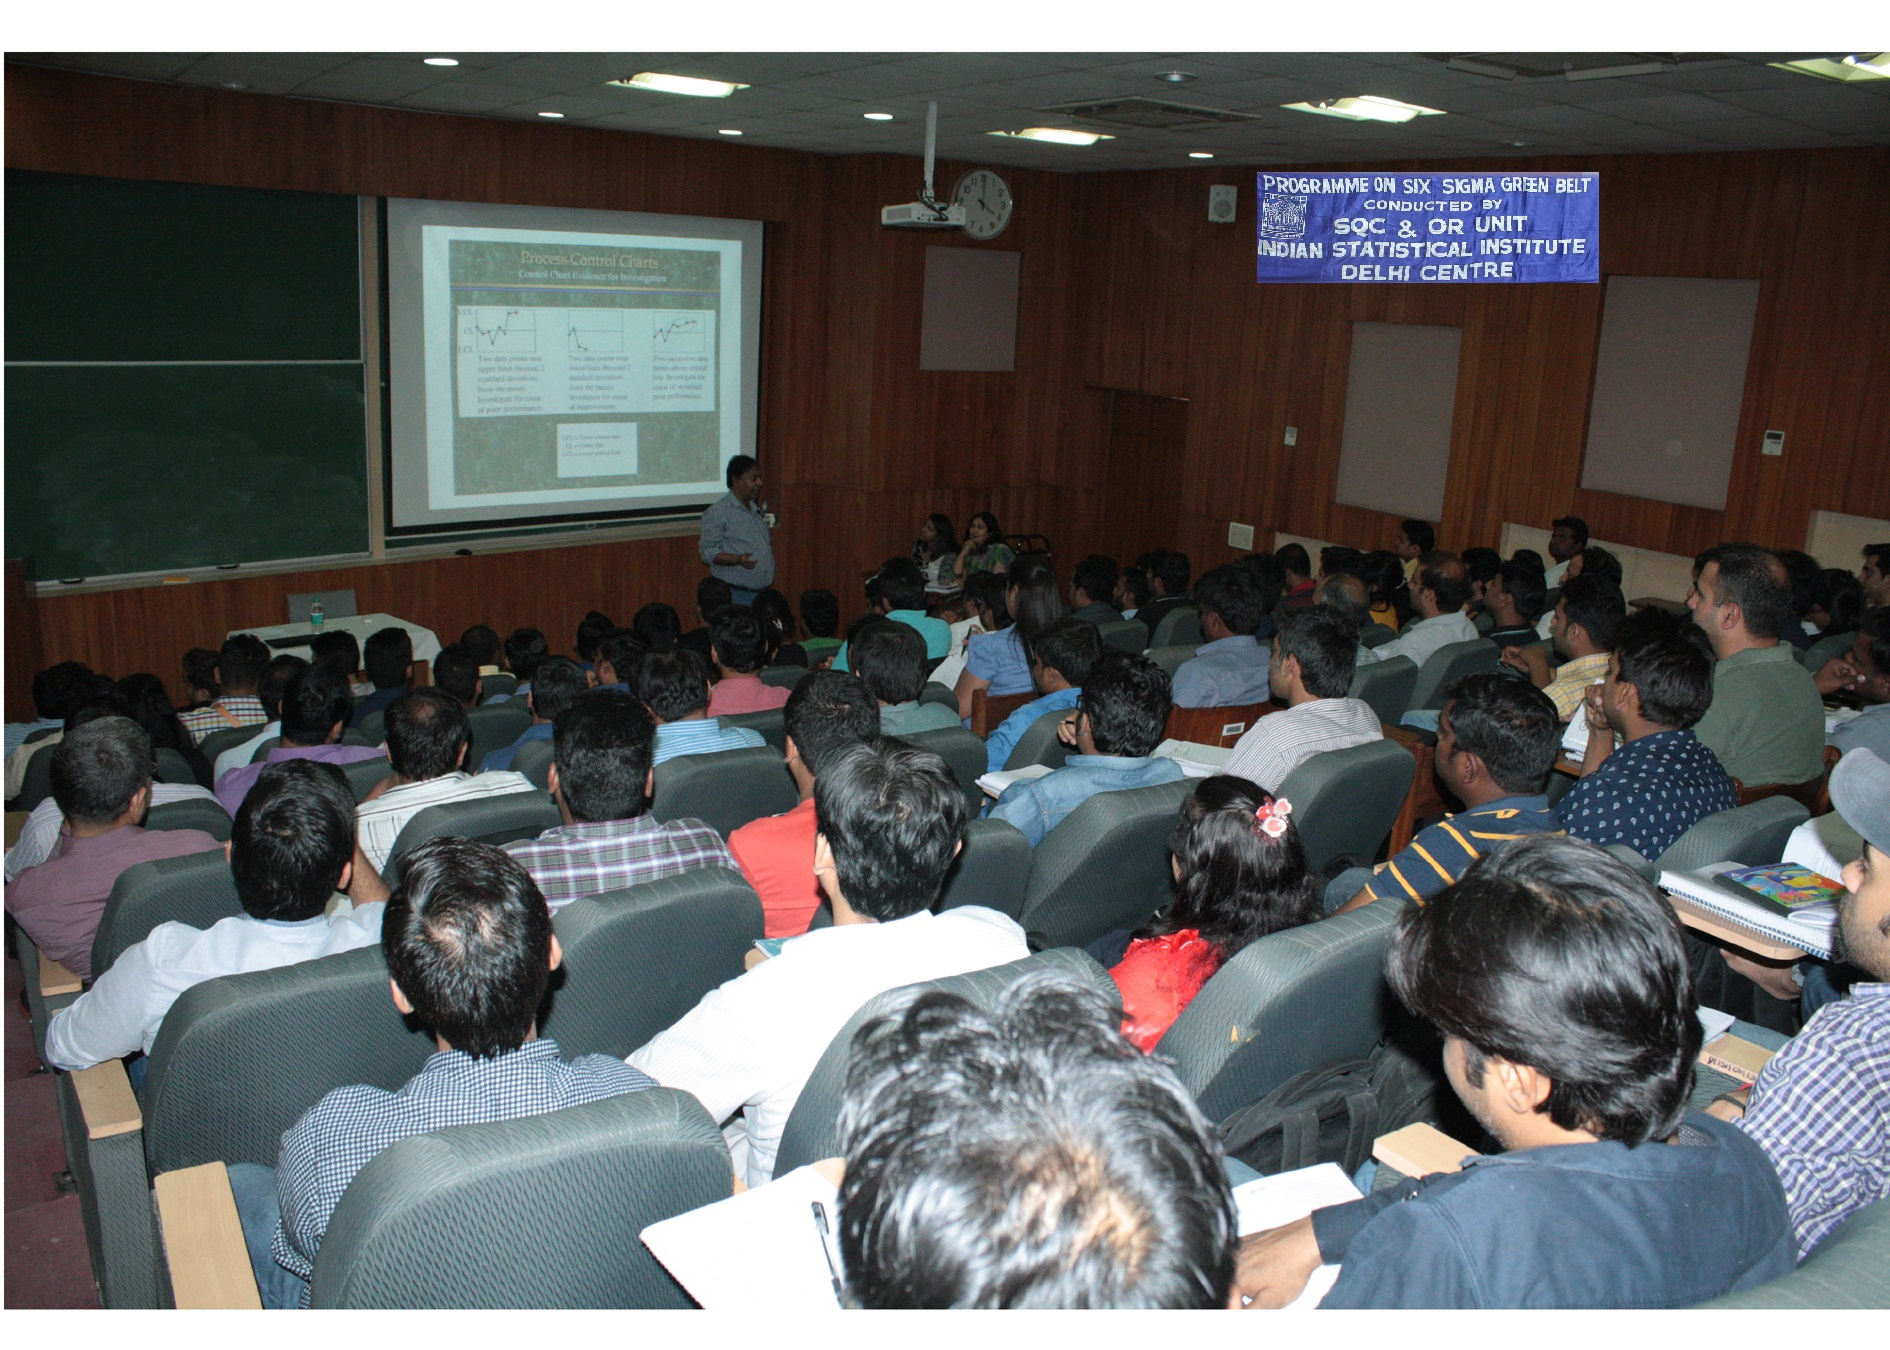 Six Sigma Green Belt Indian Statistical Institute Delhi Centre